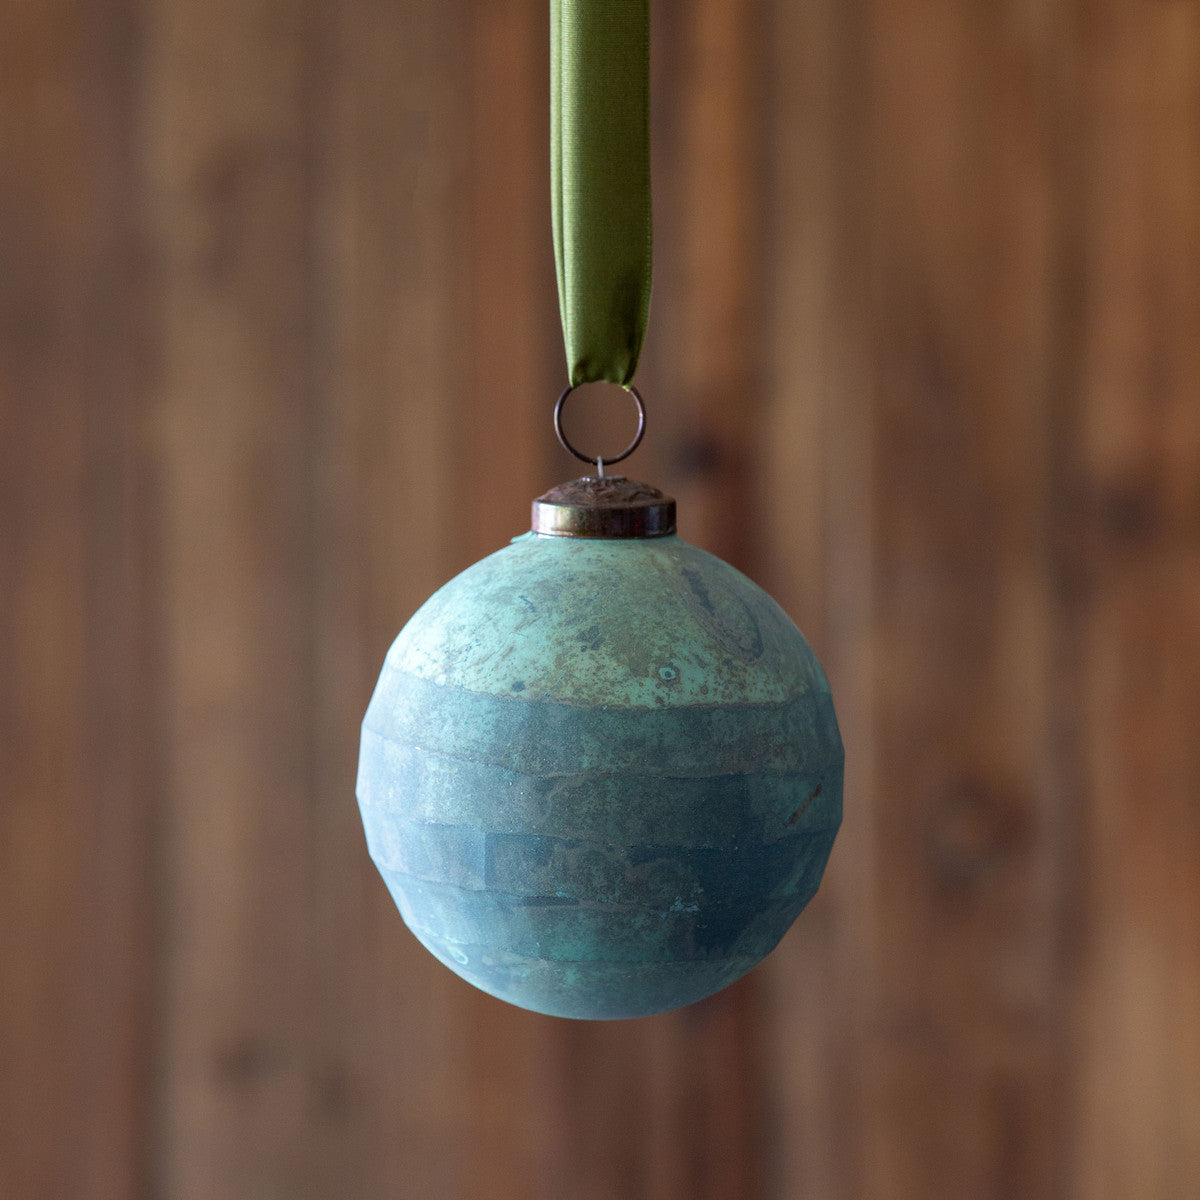 Grated Pattern Glass Ball Ornament Turquoise